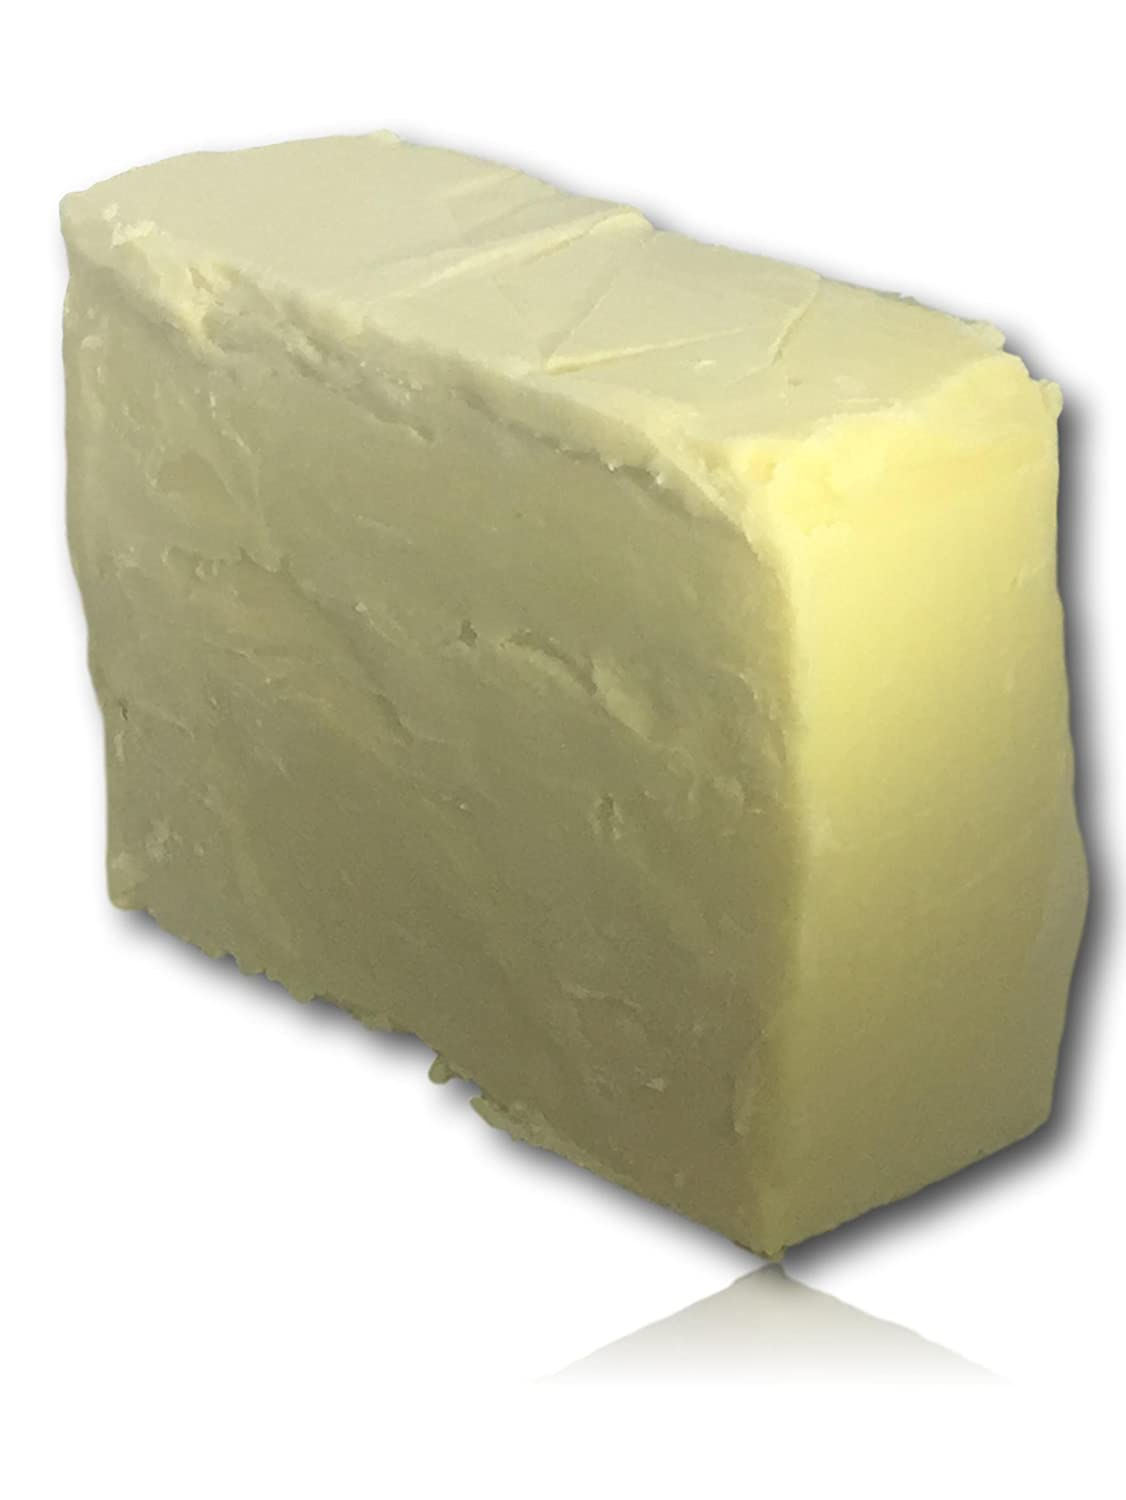 Grade A Shea Butter Wholesale Raw Unrefined 5lbs. Cheap SALE Start in April Produced 202